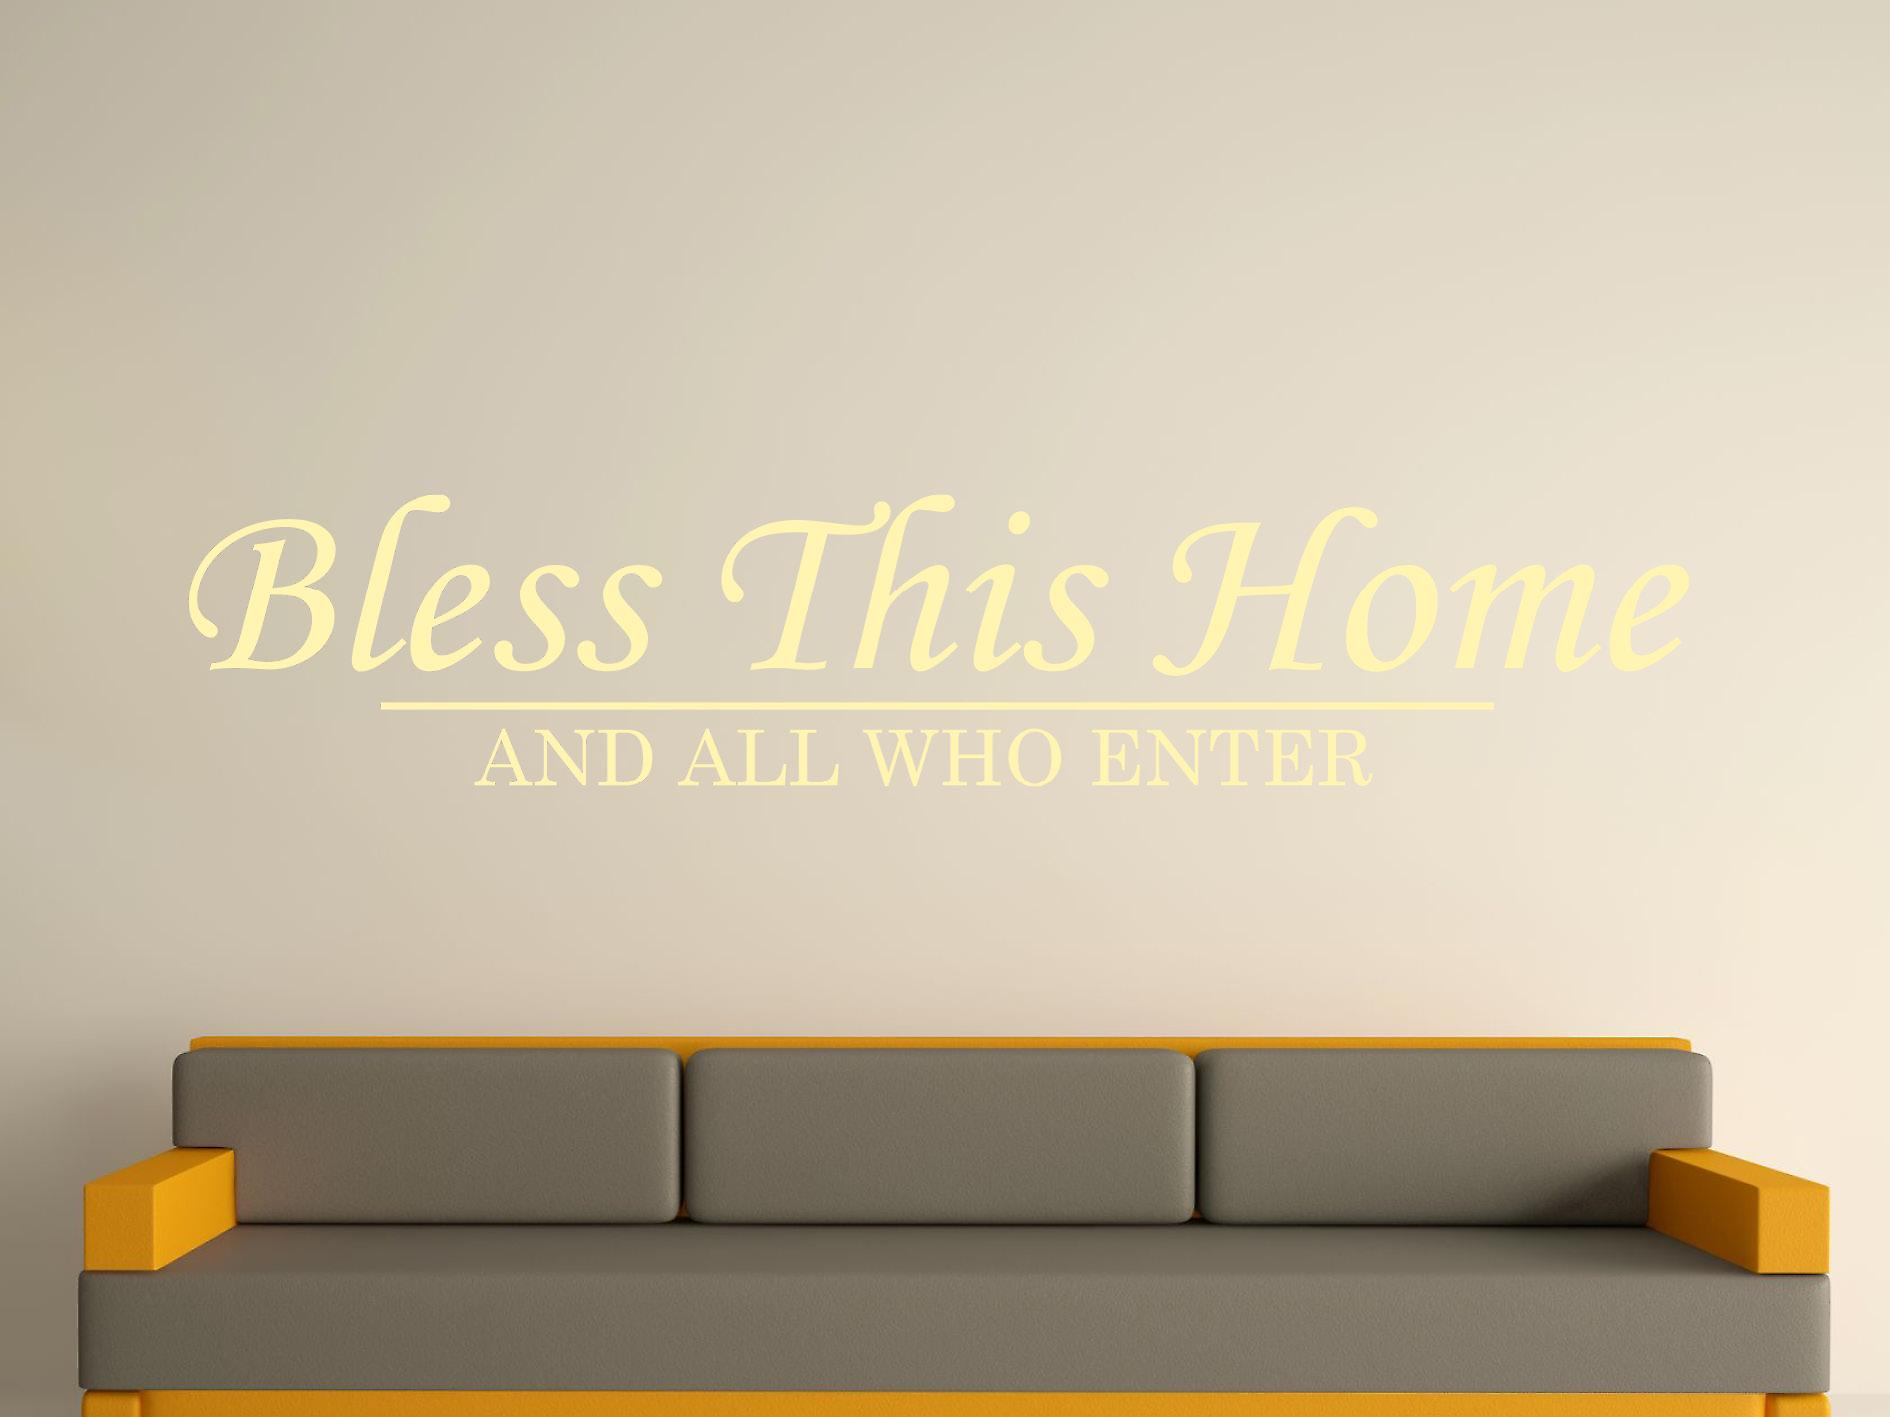 Bless This Home Wall Art Sticker - Beige